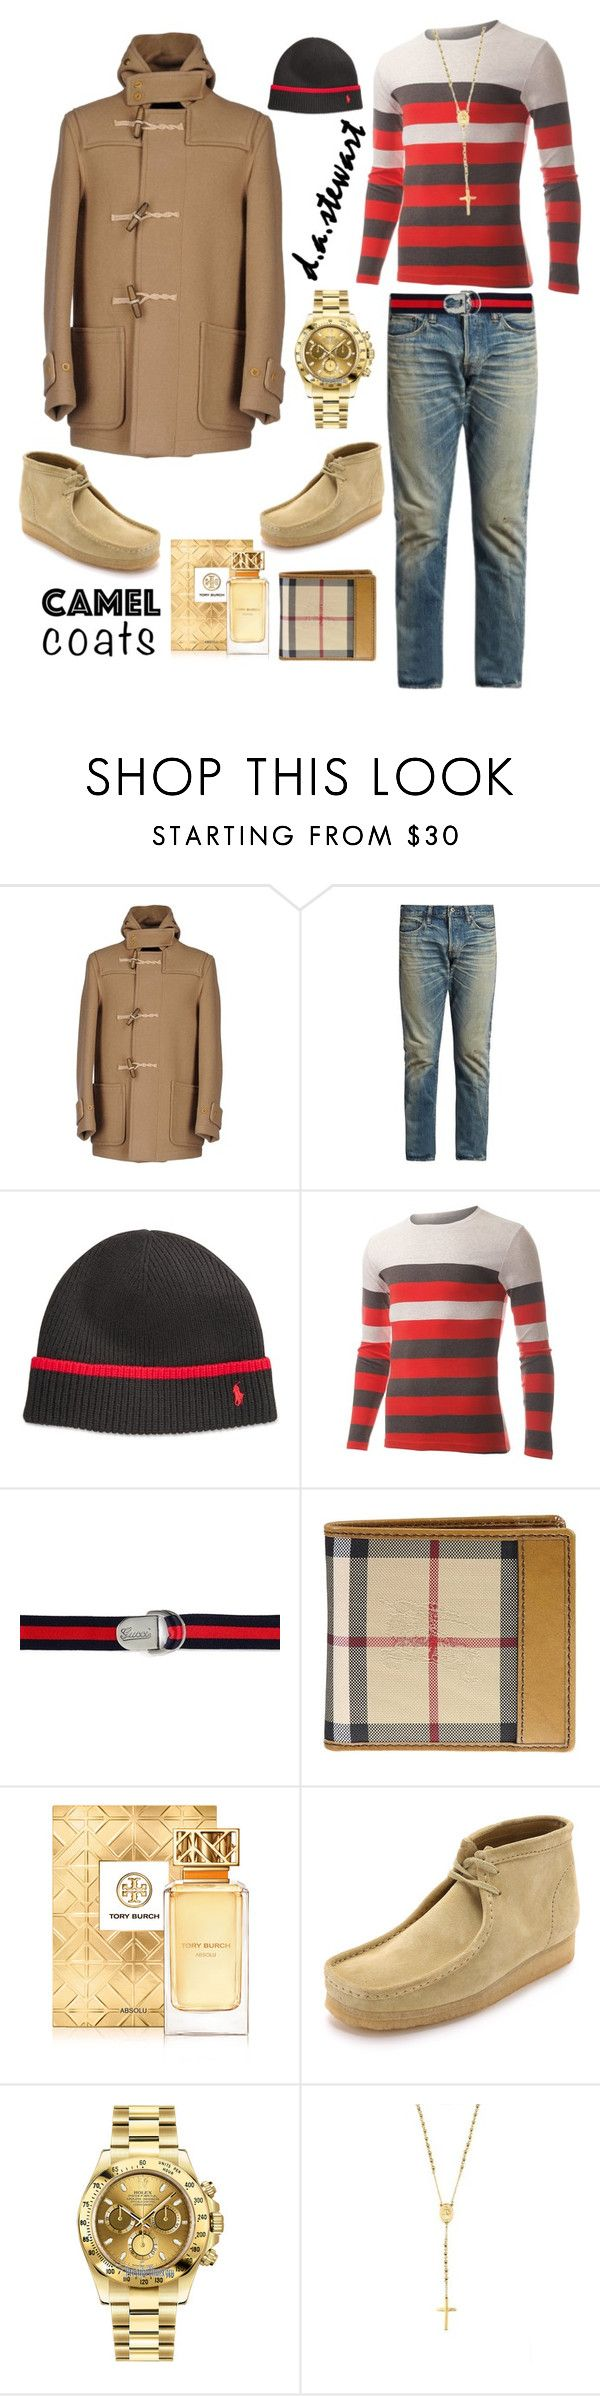 """🐫"" by dastewart ❤ liked on Polyvore featuring Gloverall, Simon Miller, Polo Ralph Lauren, Gucci, Burberry, Tory Burch, Clarks, Rolex, Mister and men's fashion"